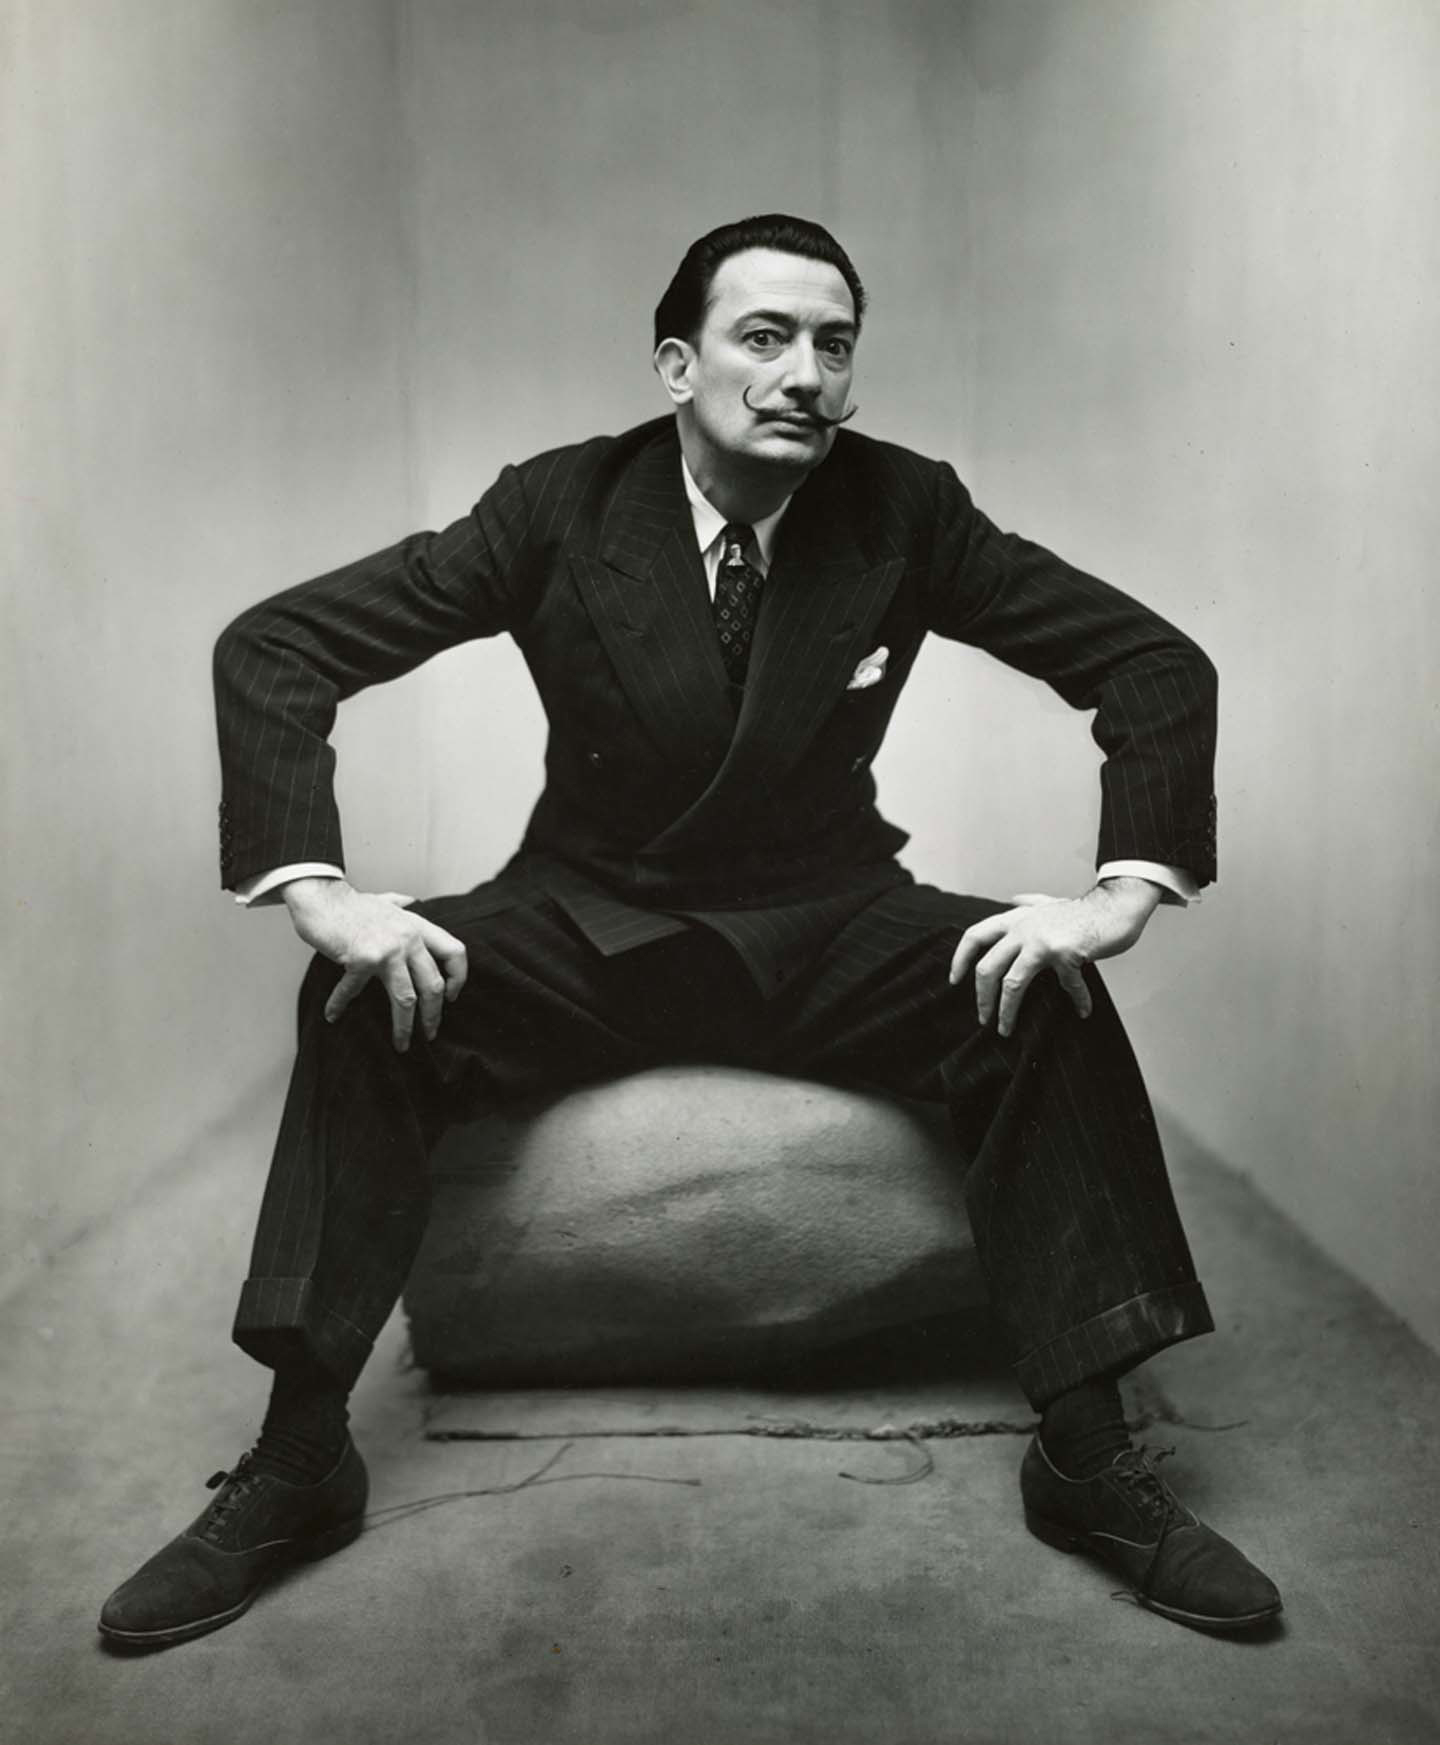 Salvador Dalí, New York, 1947 © The Irving Penn Foundation